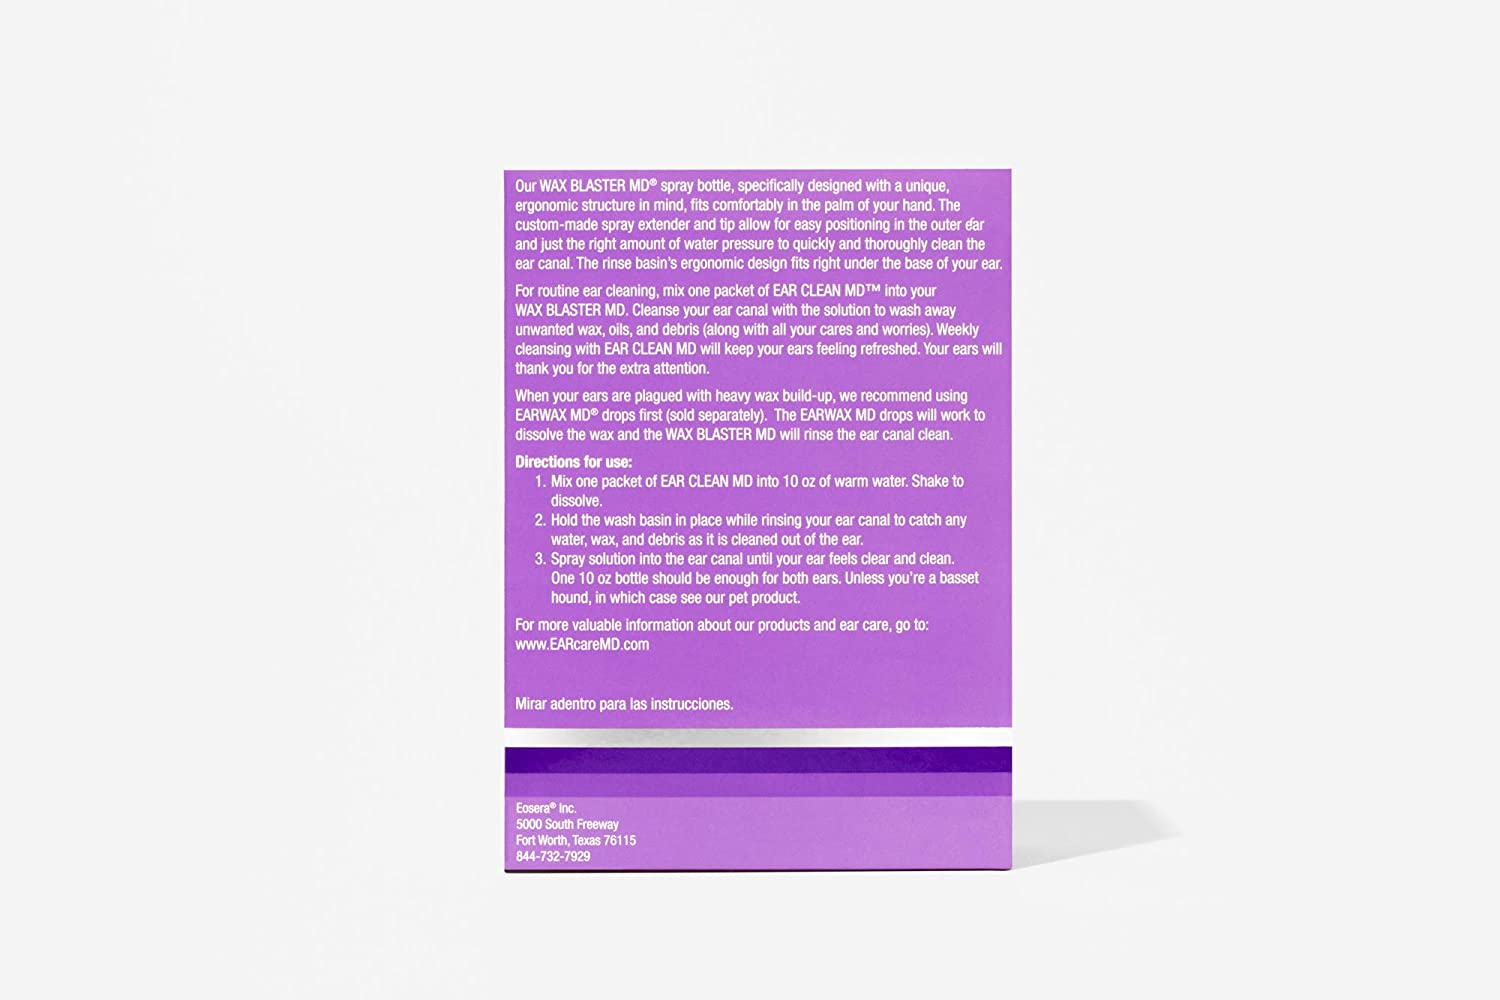 Wax Blaster MD Kit: Health & Personal Care